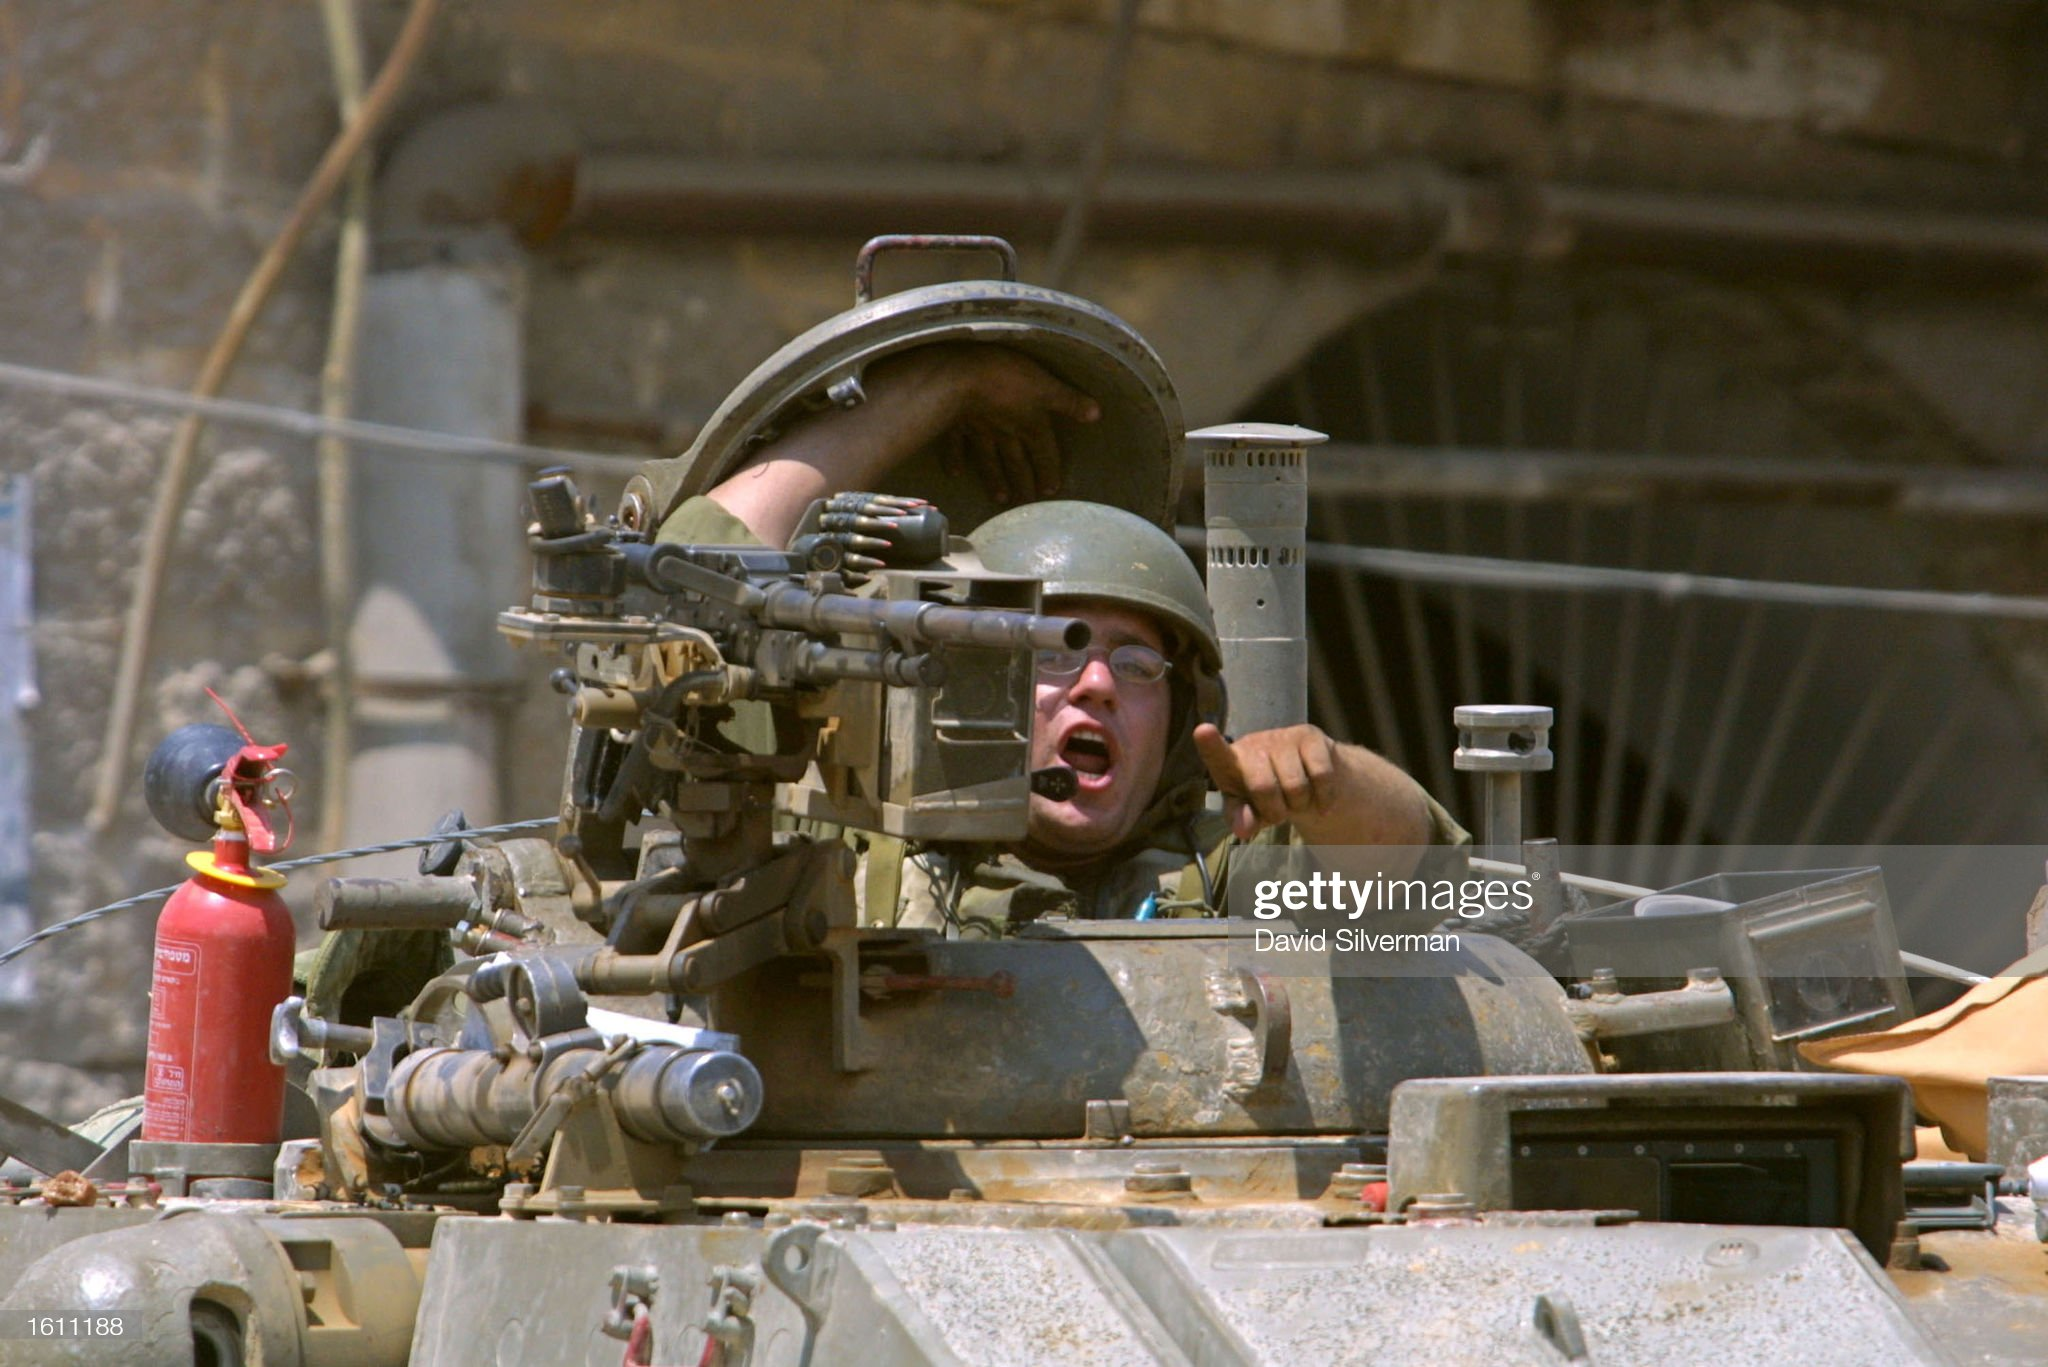 https://media.gettyimages.com/photos/an-israeli-tank-commander-orders-journalists-to-leave-the-area-before-picture-id1611188?s=2048x2048